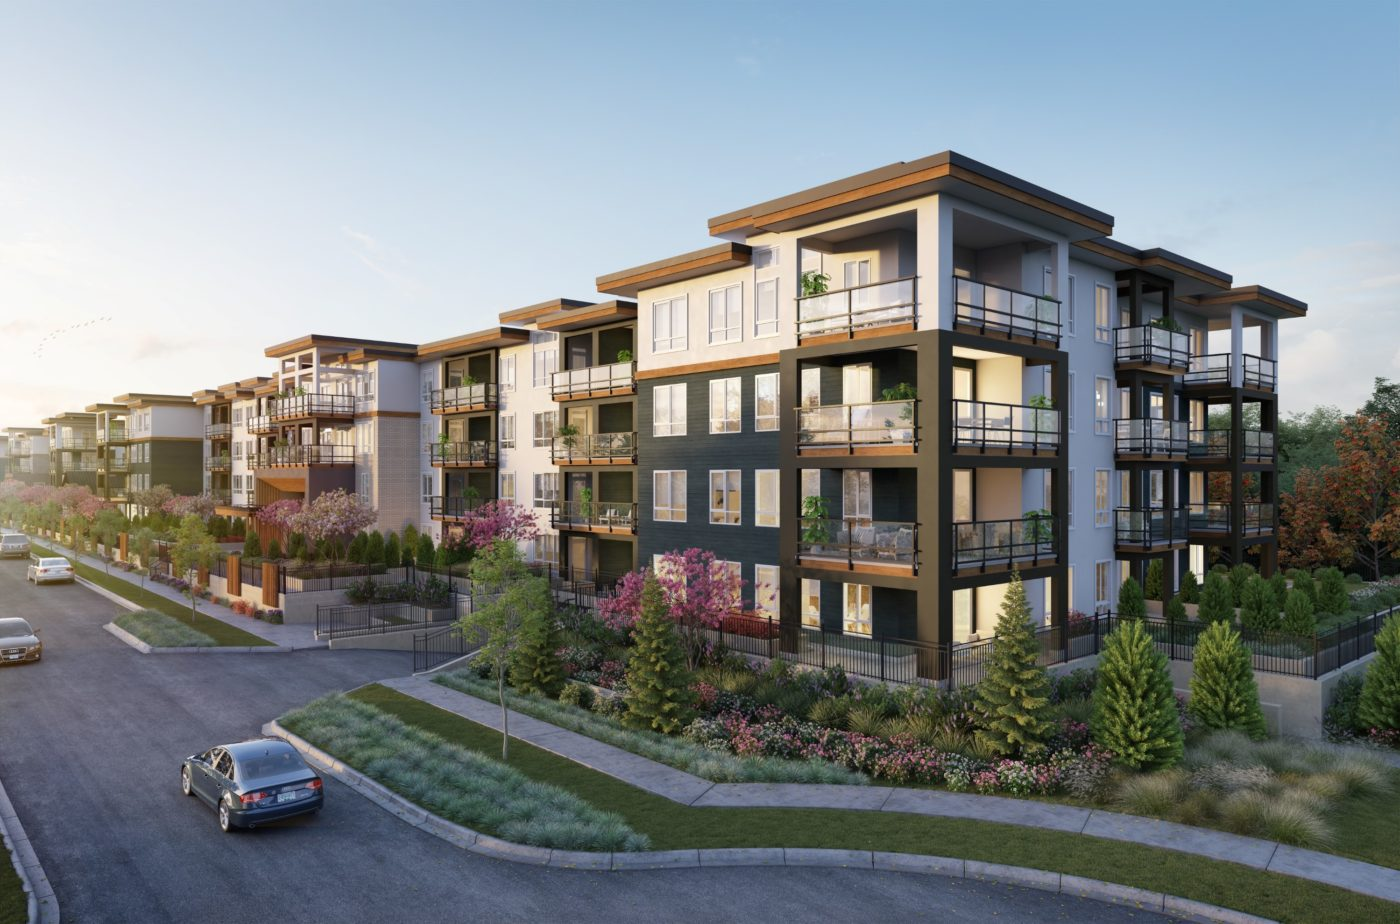 Peregrine South At Tsawwassen Shores By Aquilini – Availability, Plans, Prices